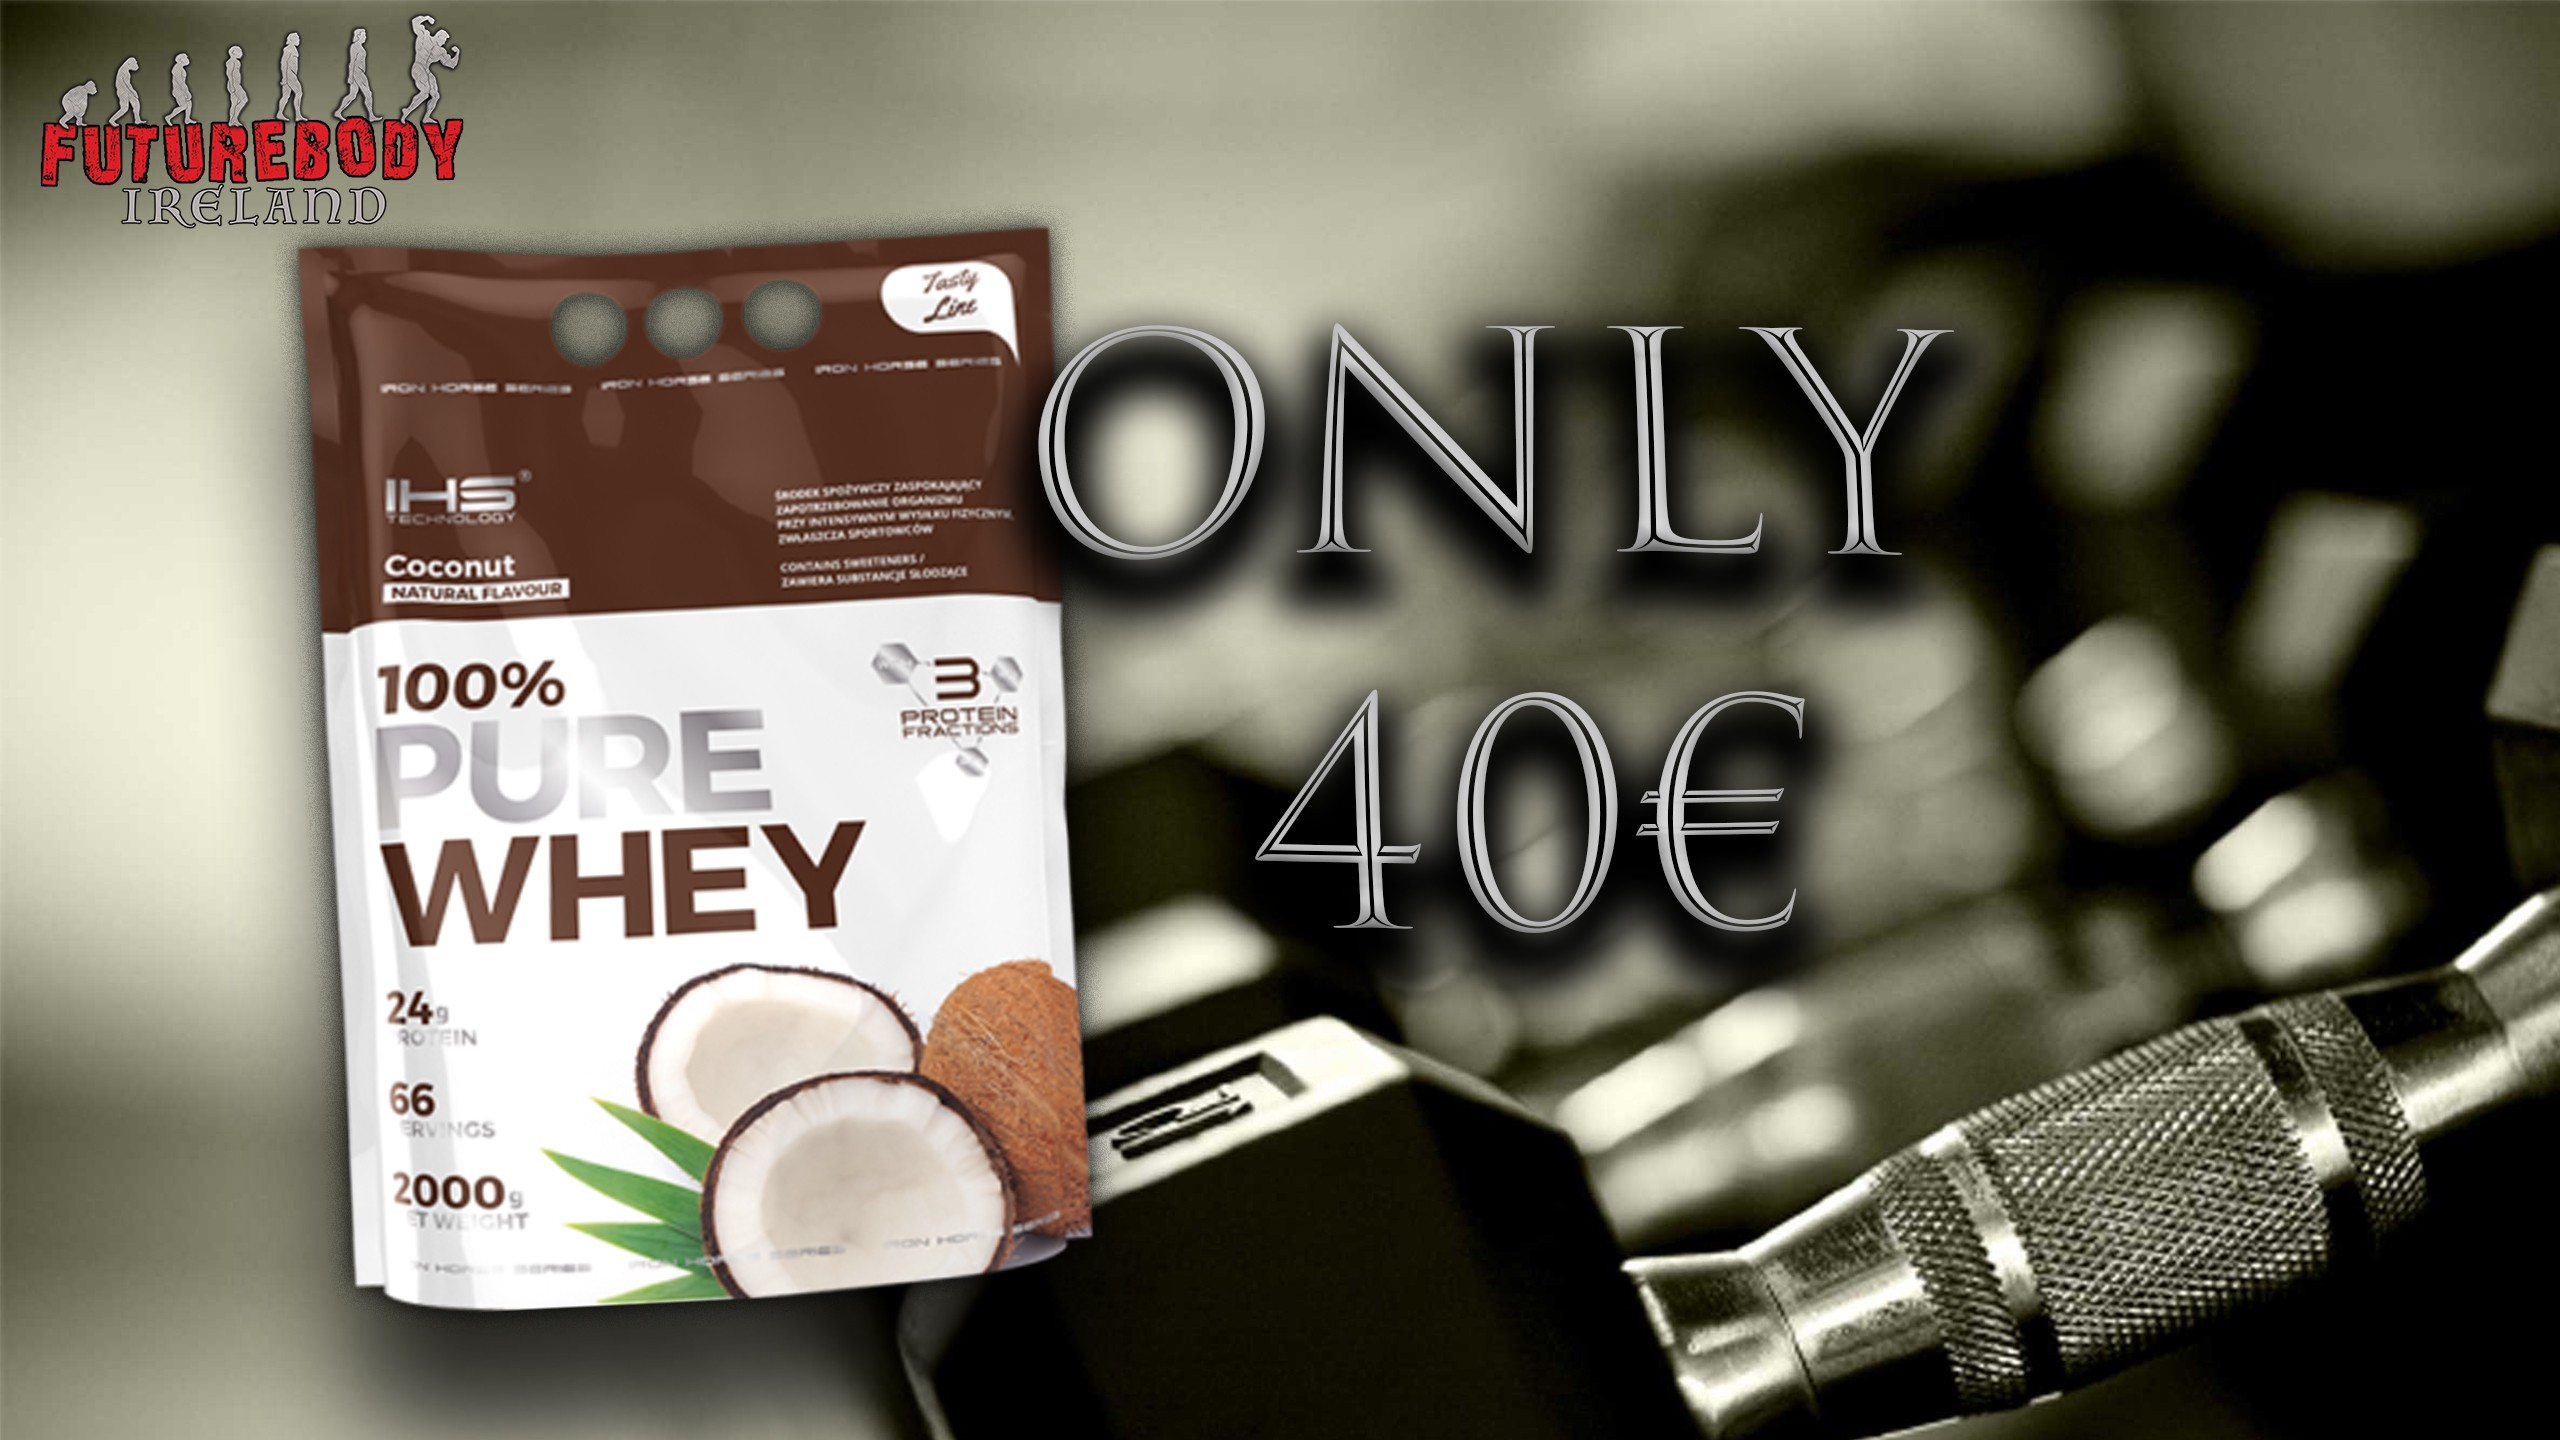 40E only